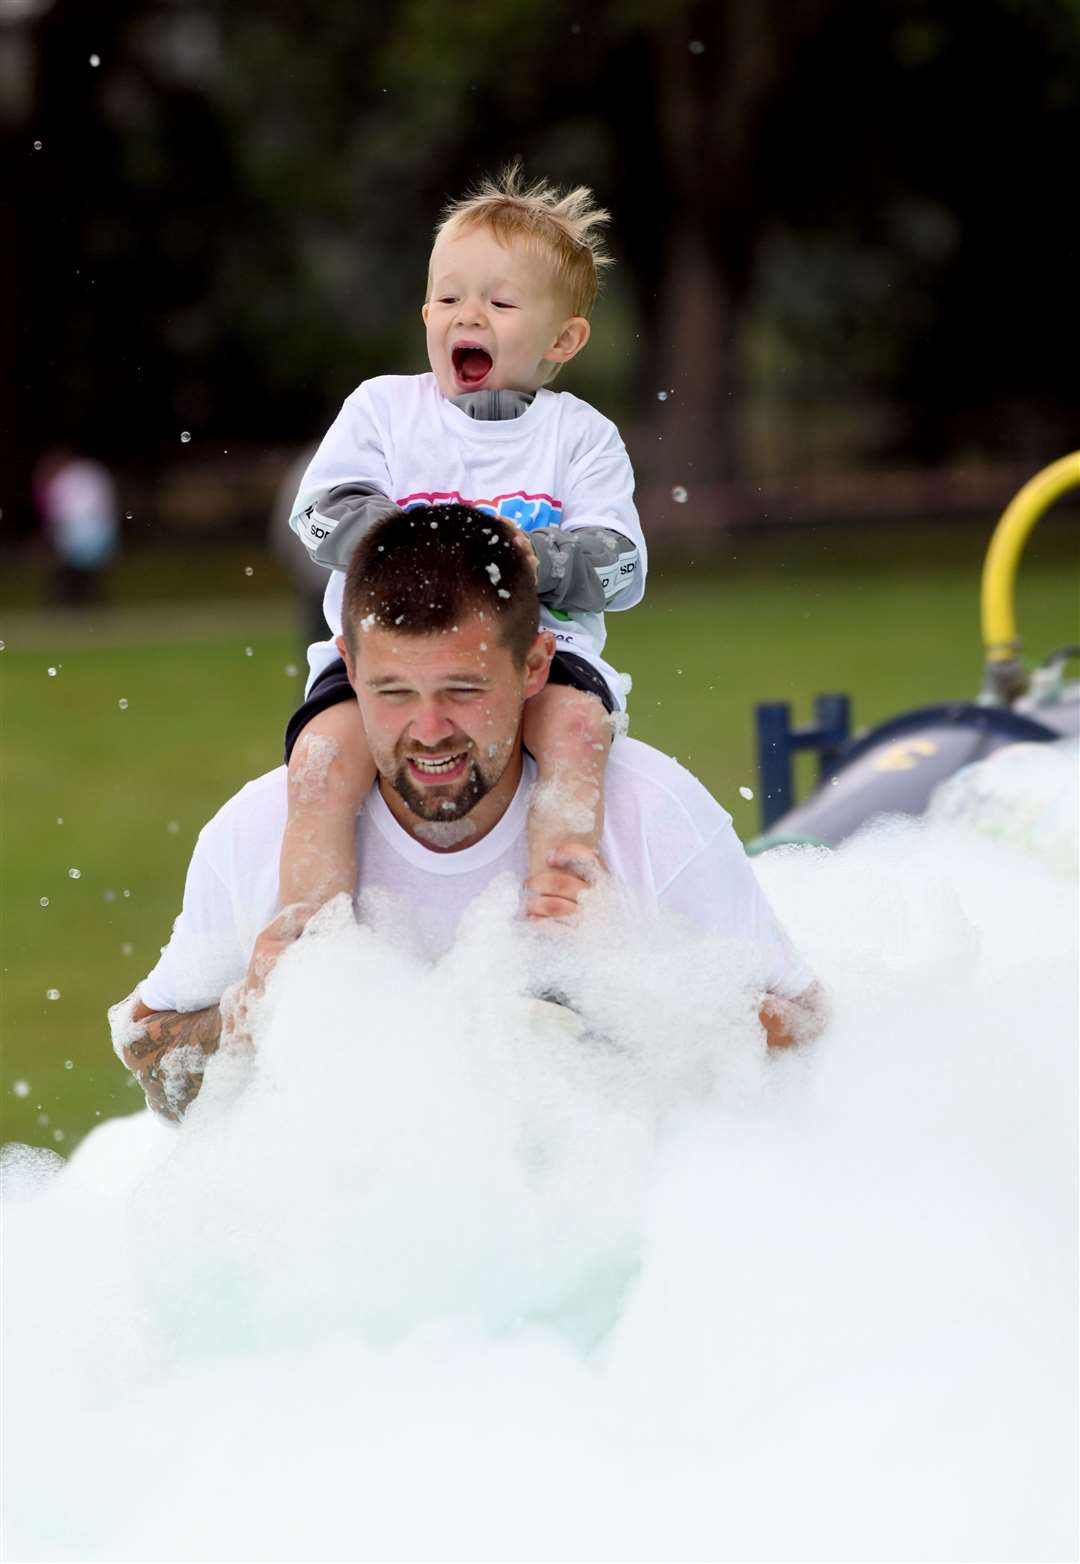 Bubble Rush at The Walks in Kings Lynn. MLNF-21AF09598